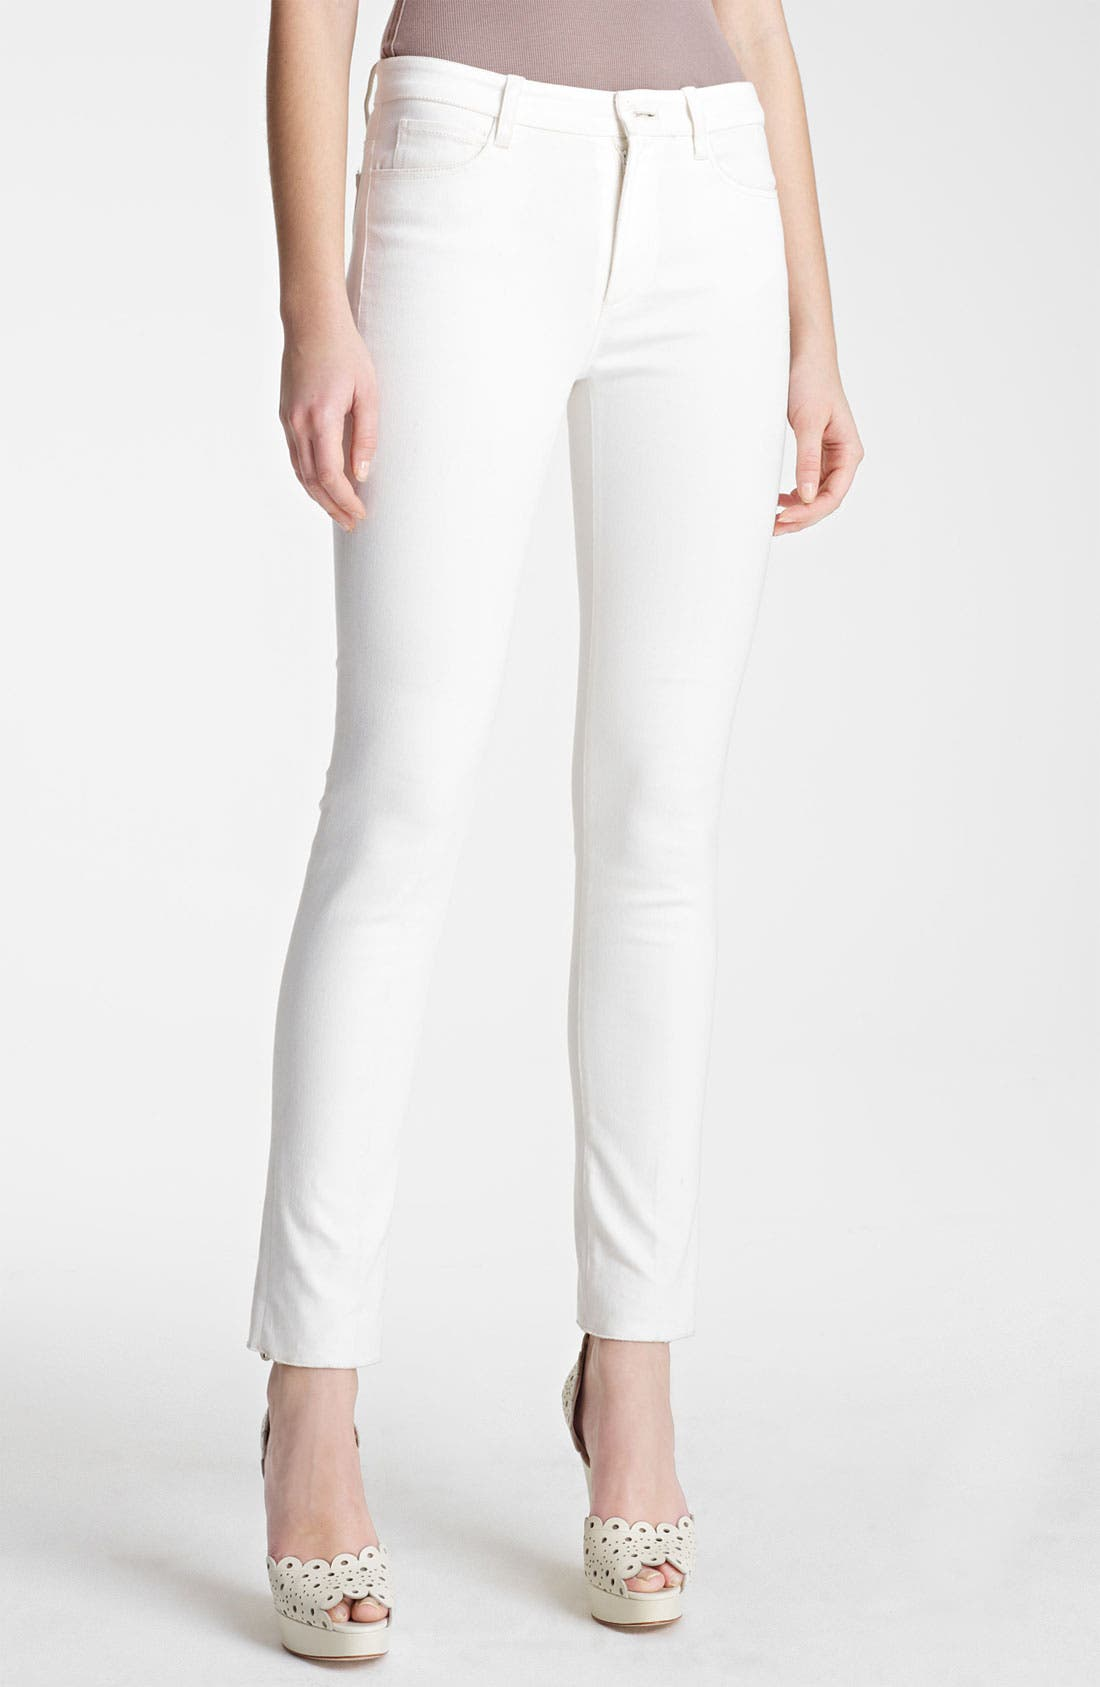 Alternate Image 1 Selected - Oscar de la Renta Skinny Jeans